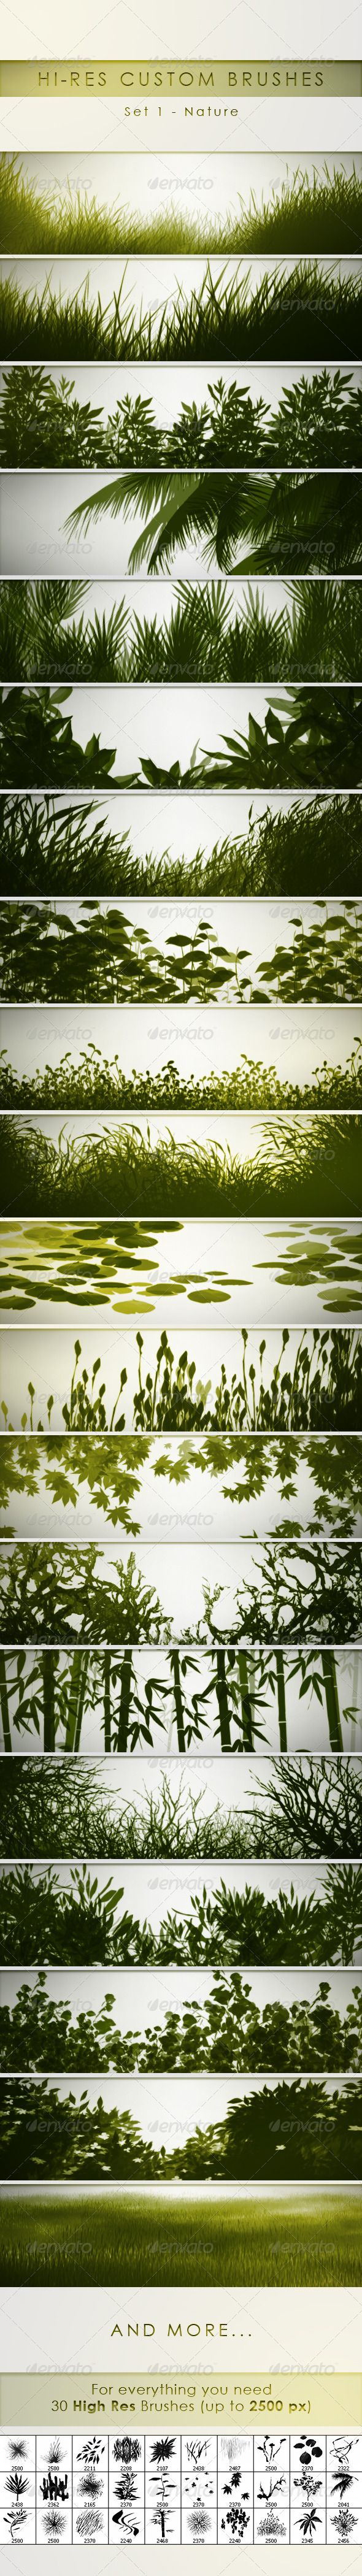 30 Hi-Res Custom Brushes - Nature  #GraphicRiver         30 Hi-Res Custom Brushes – Nature is a Set of professional Photoshop brushes perfect for graphic designers and illustrators. All of them have a resolution up to 2500 px., perfect for high resolution files. And they're configurated to work with the pen pressure